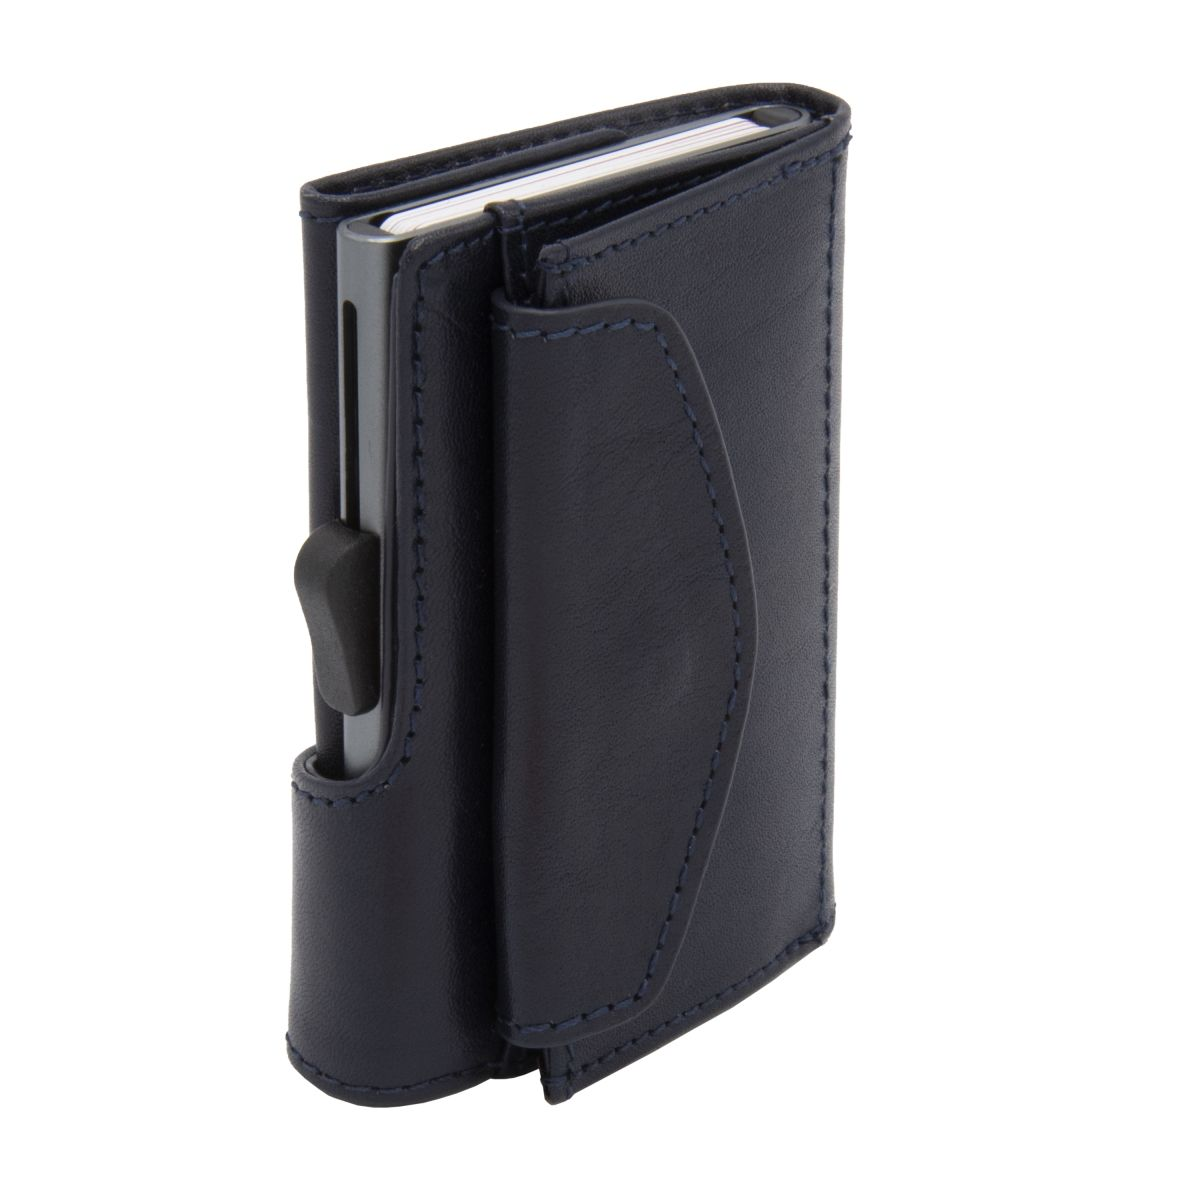 C-Secure Aluminum Card Holder with Genuine Leather and Coin Pouch - Blue Montana